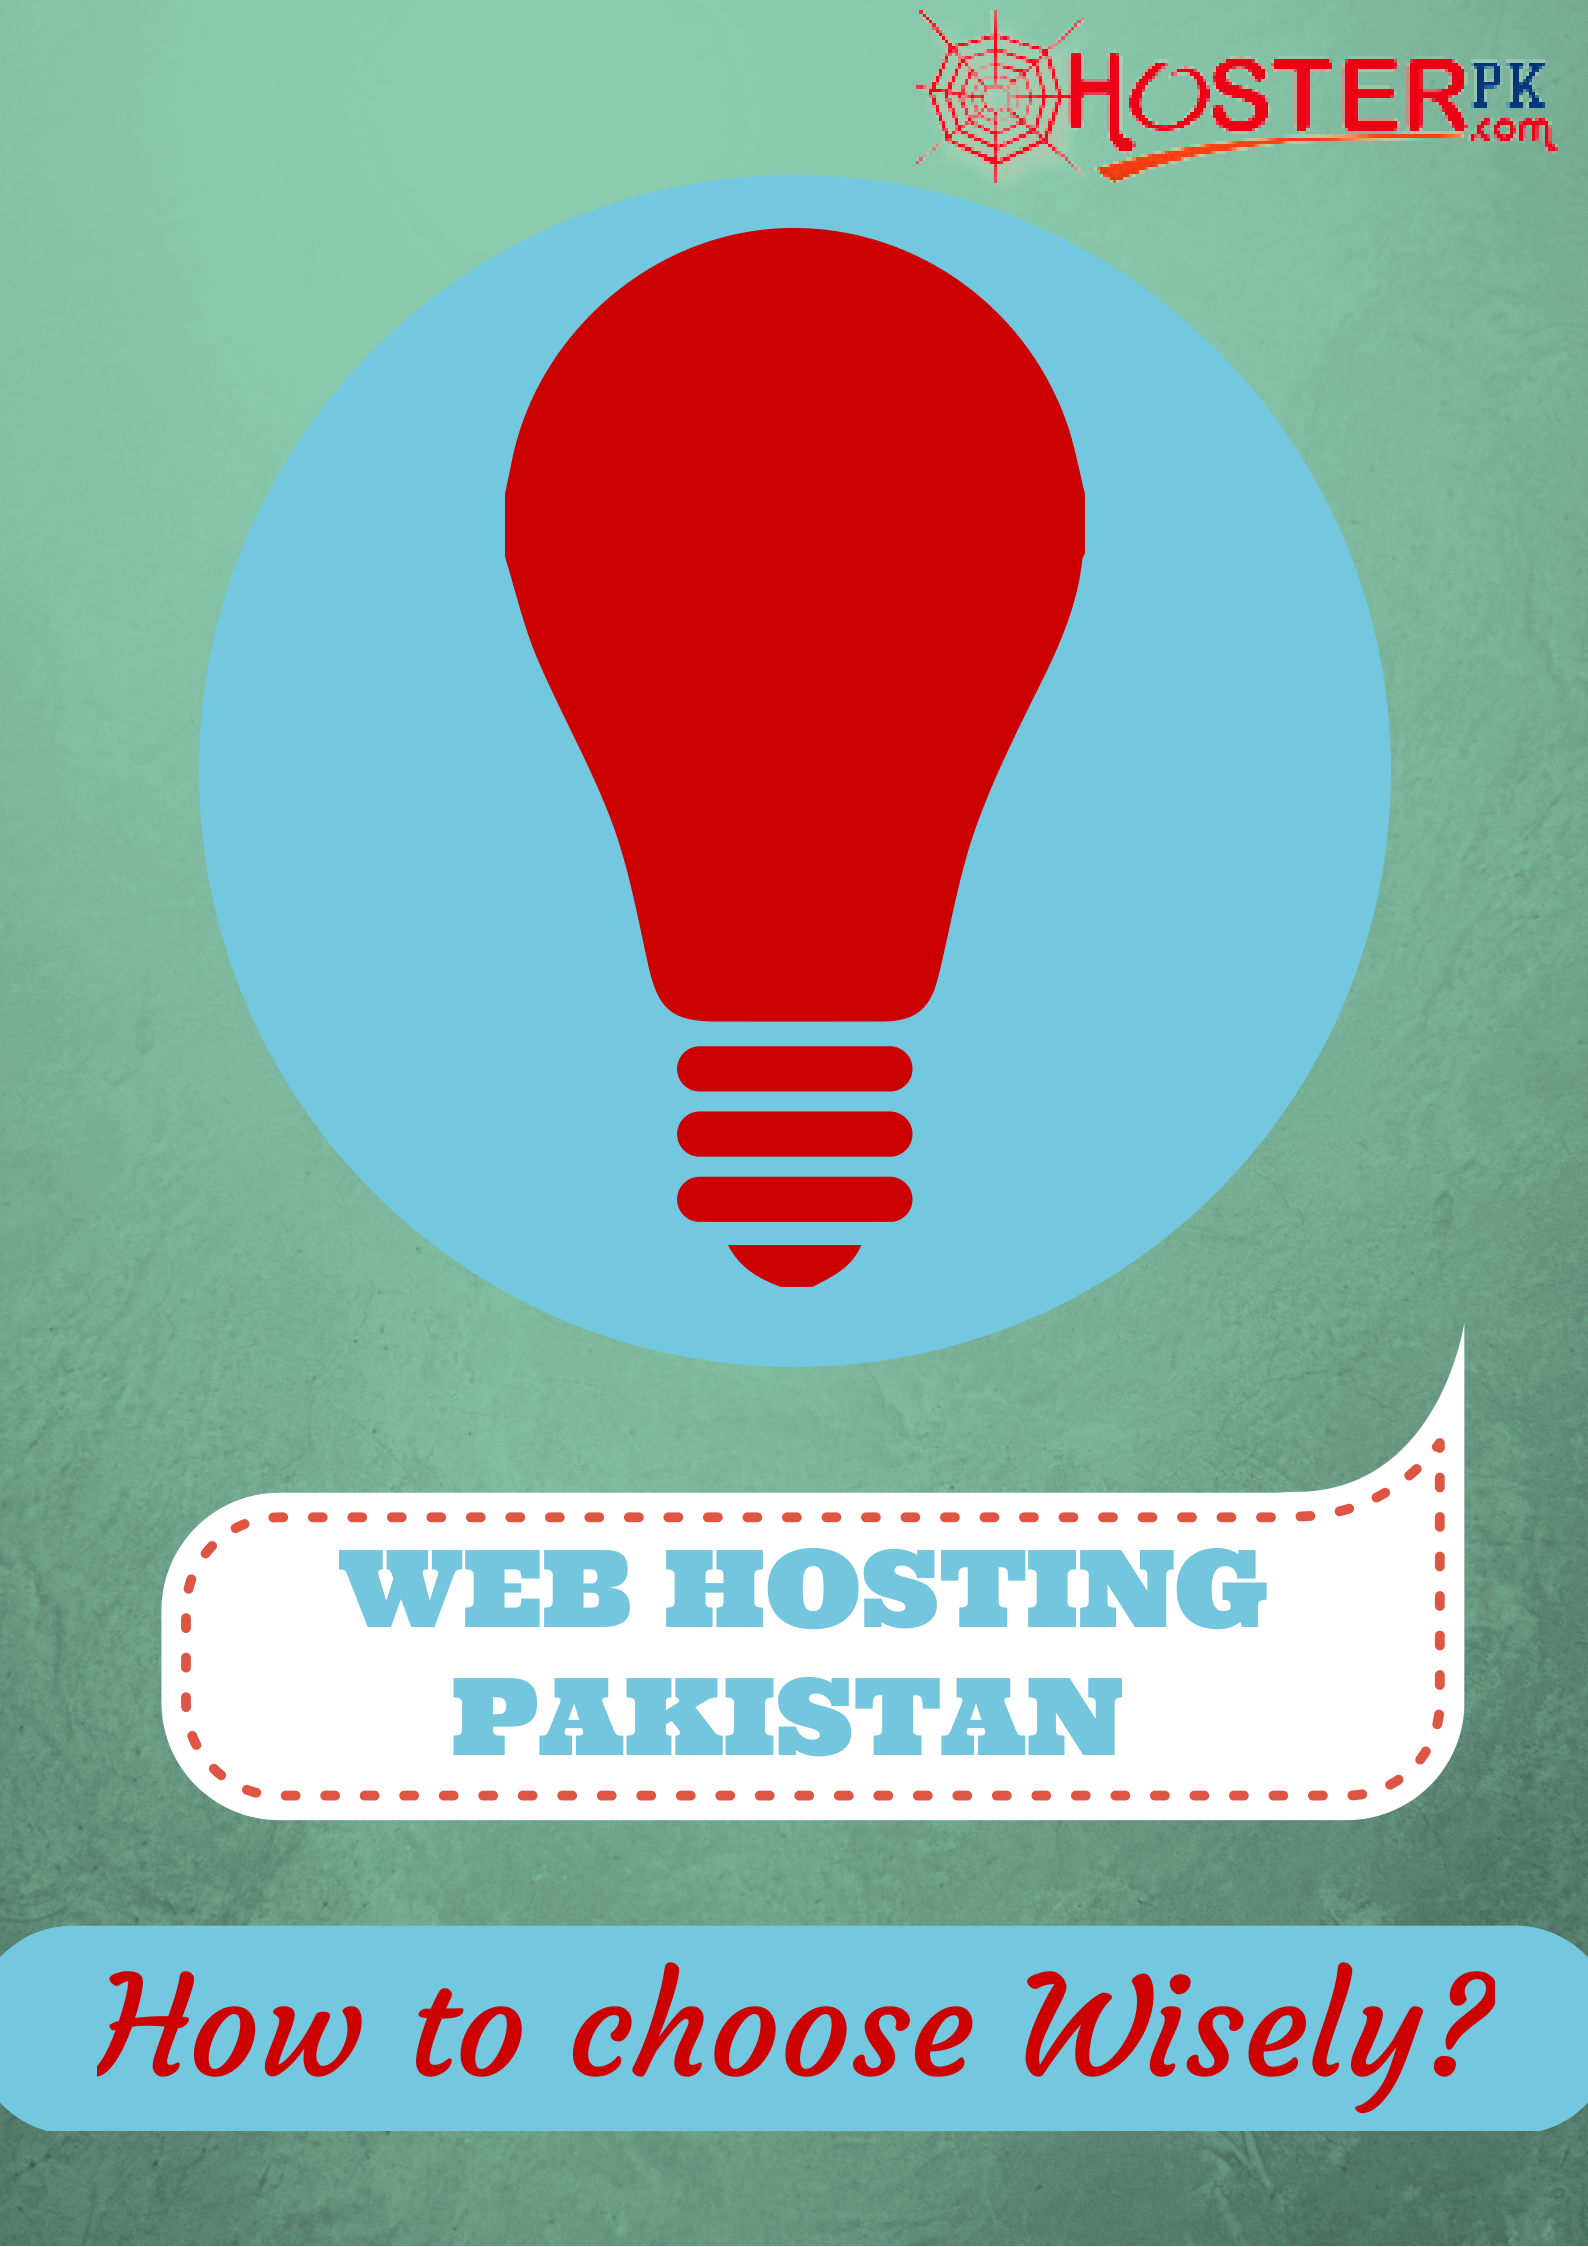 How to choose Web Hosting wisely